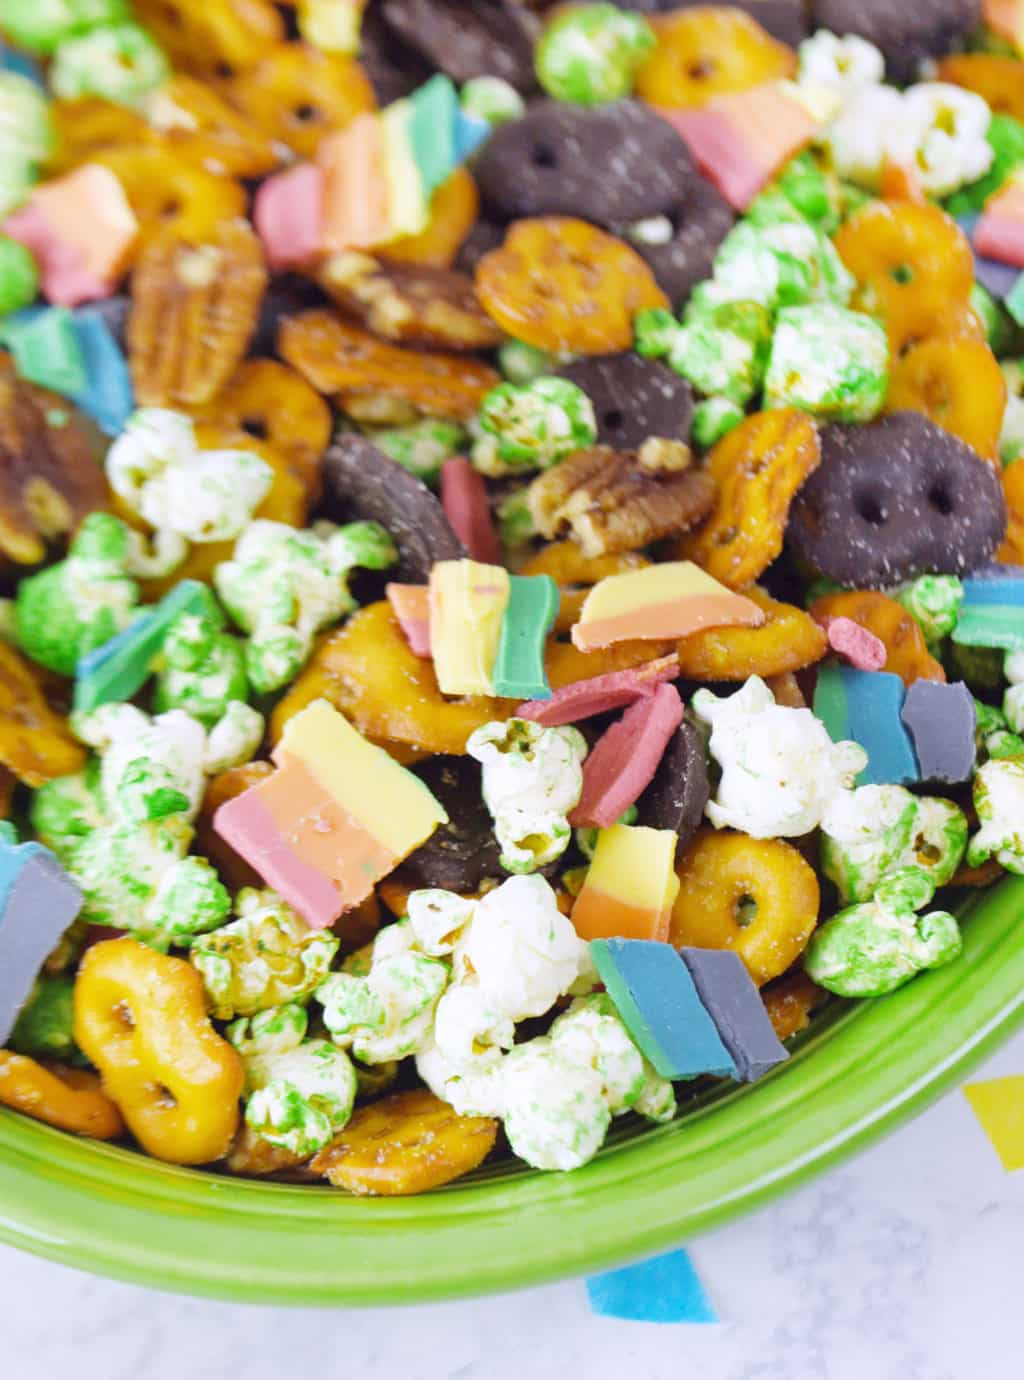 Rainbow St. Patrick's Day Snack Mix!!! Such a fun and delicious snack mix for St. Patrick's Day!